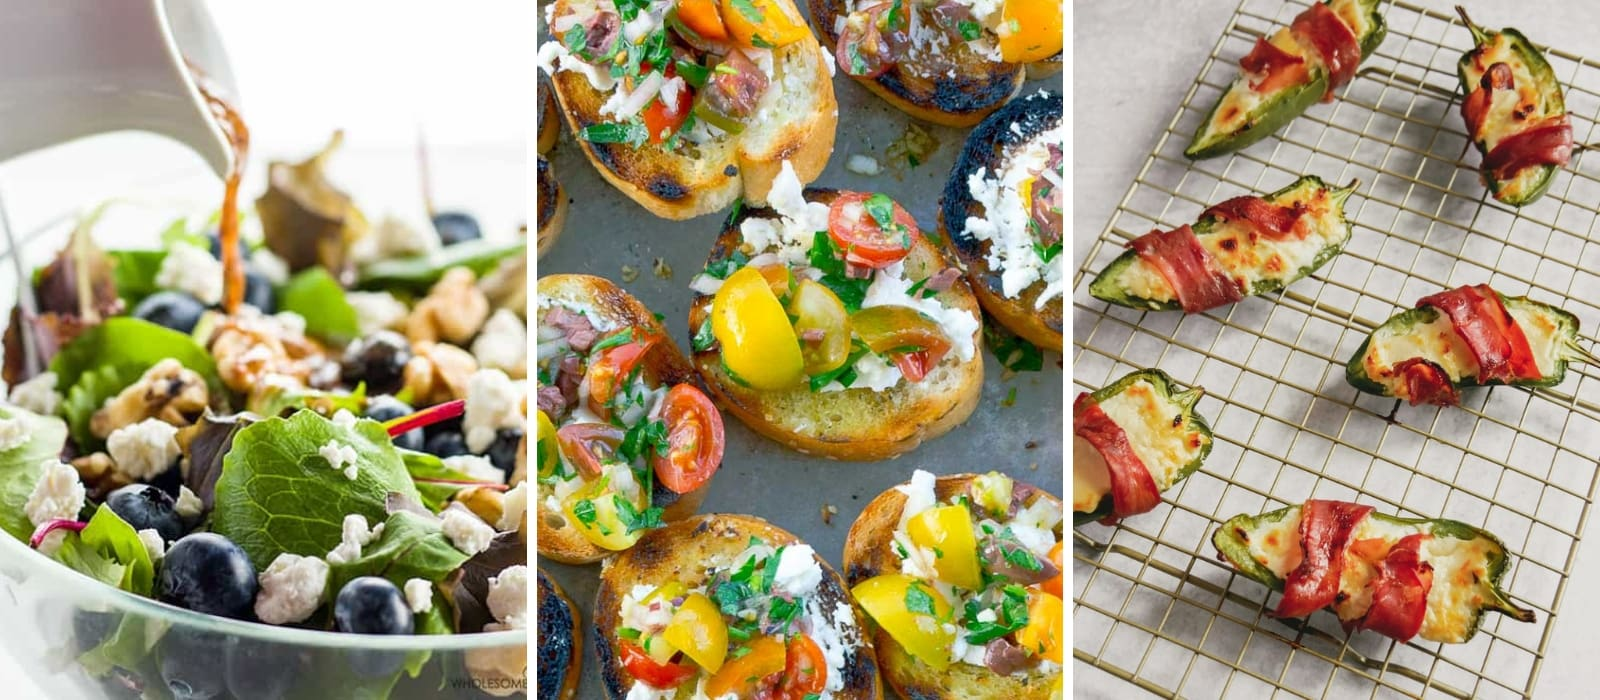 Delightful Goat Cheese Dishes for Your Next Wine Tasting Night| Cheese and Wine| Wine and Cheese| Goat Cheese Dishes| Cheese Board| Goat Cheese Recipes| #goatcheese #winencheese #cheesenwine #cheese&wine #wine #wine #winetasting #wineparty